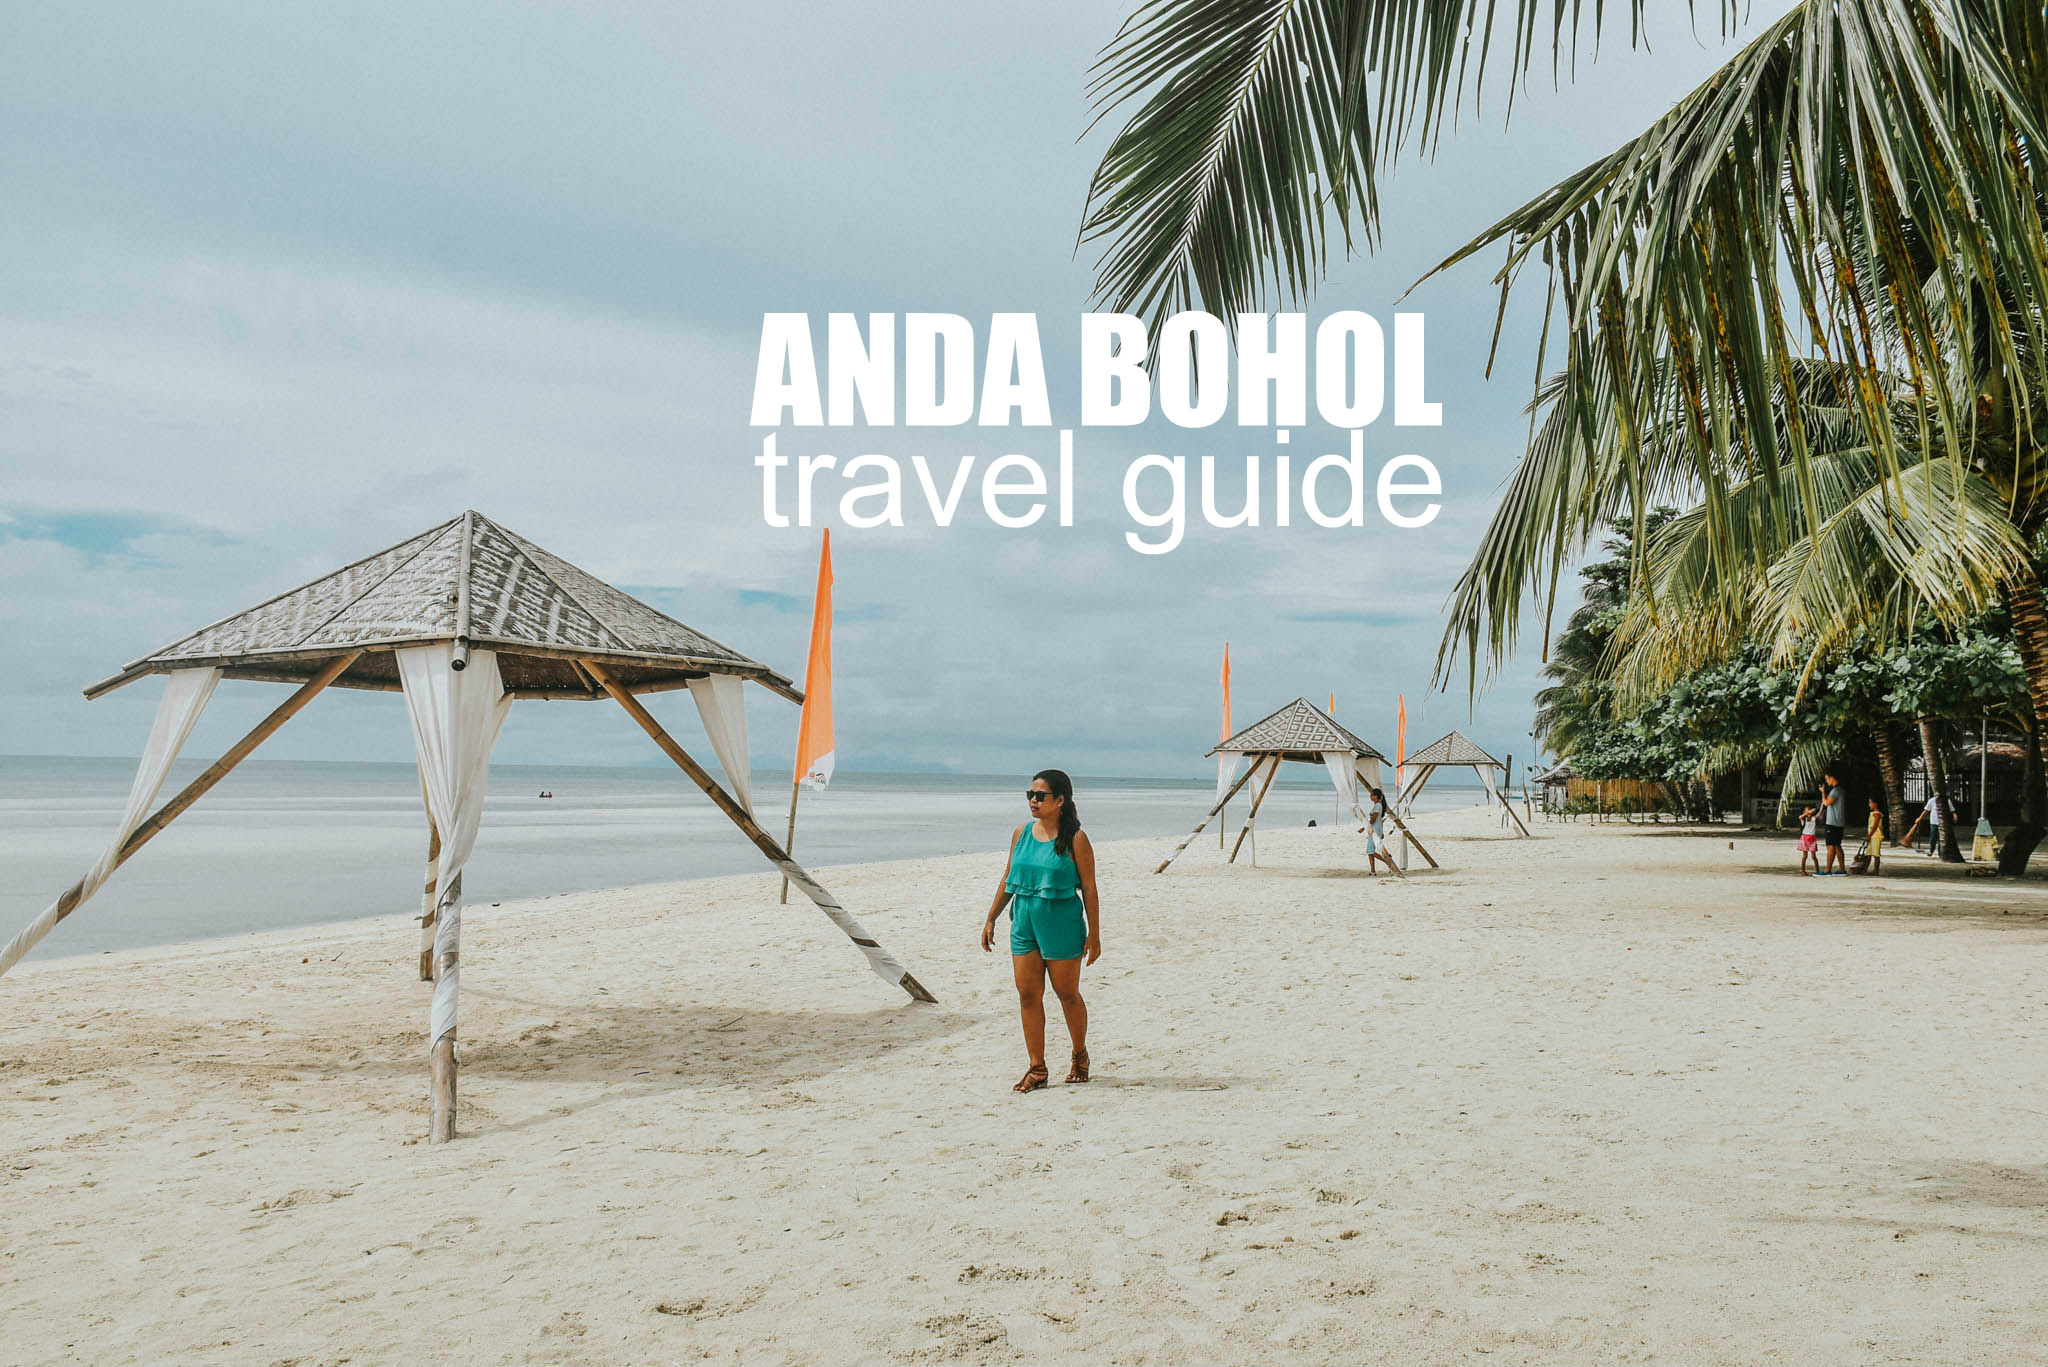 ANDA BOHOL TRAVEL GUIDE (Itinerary + Budget)